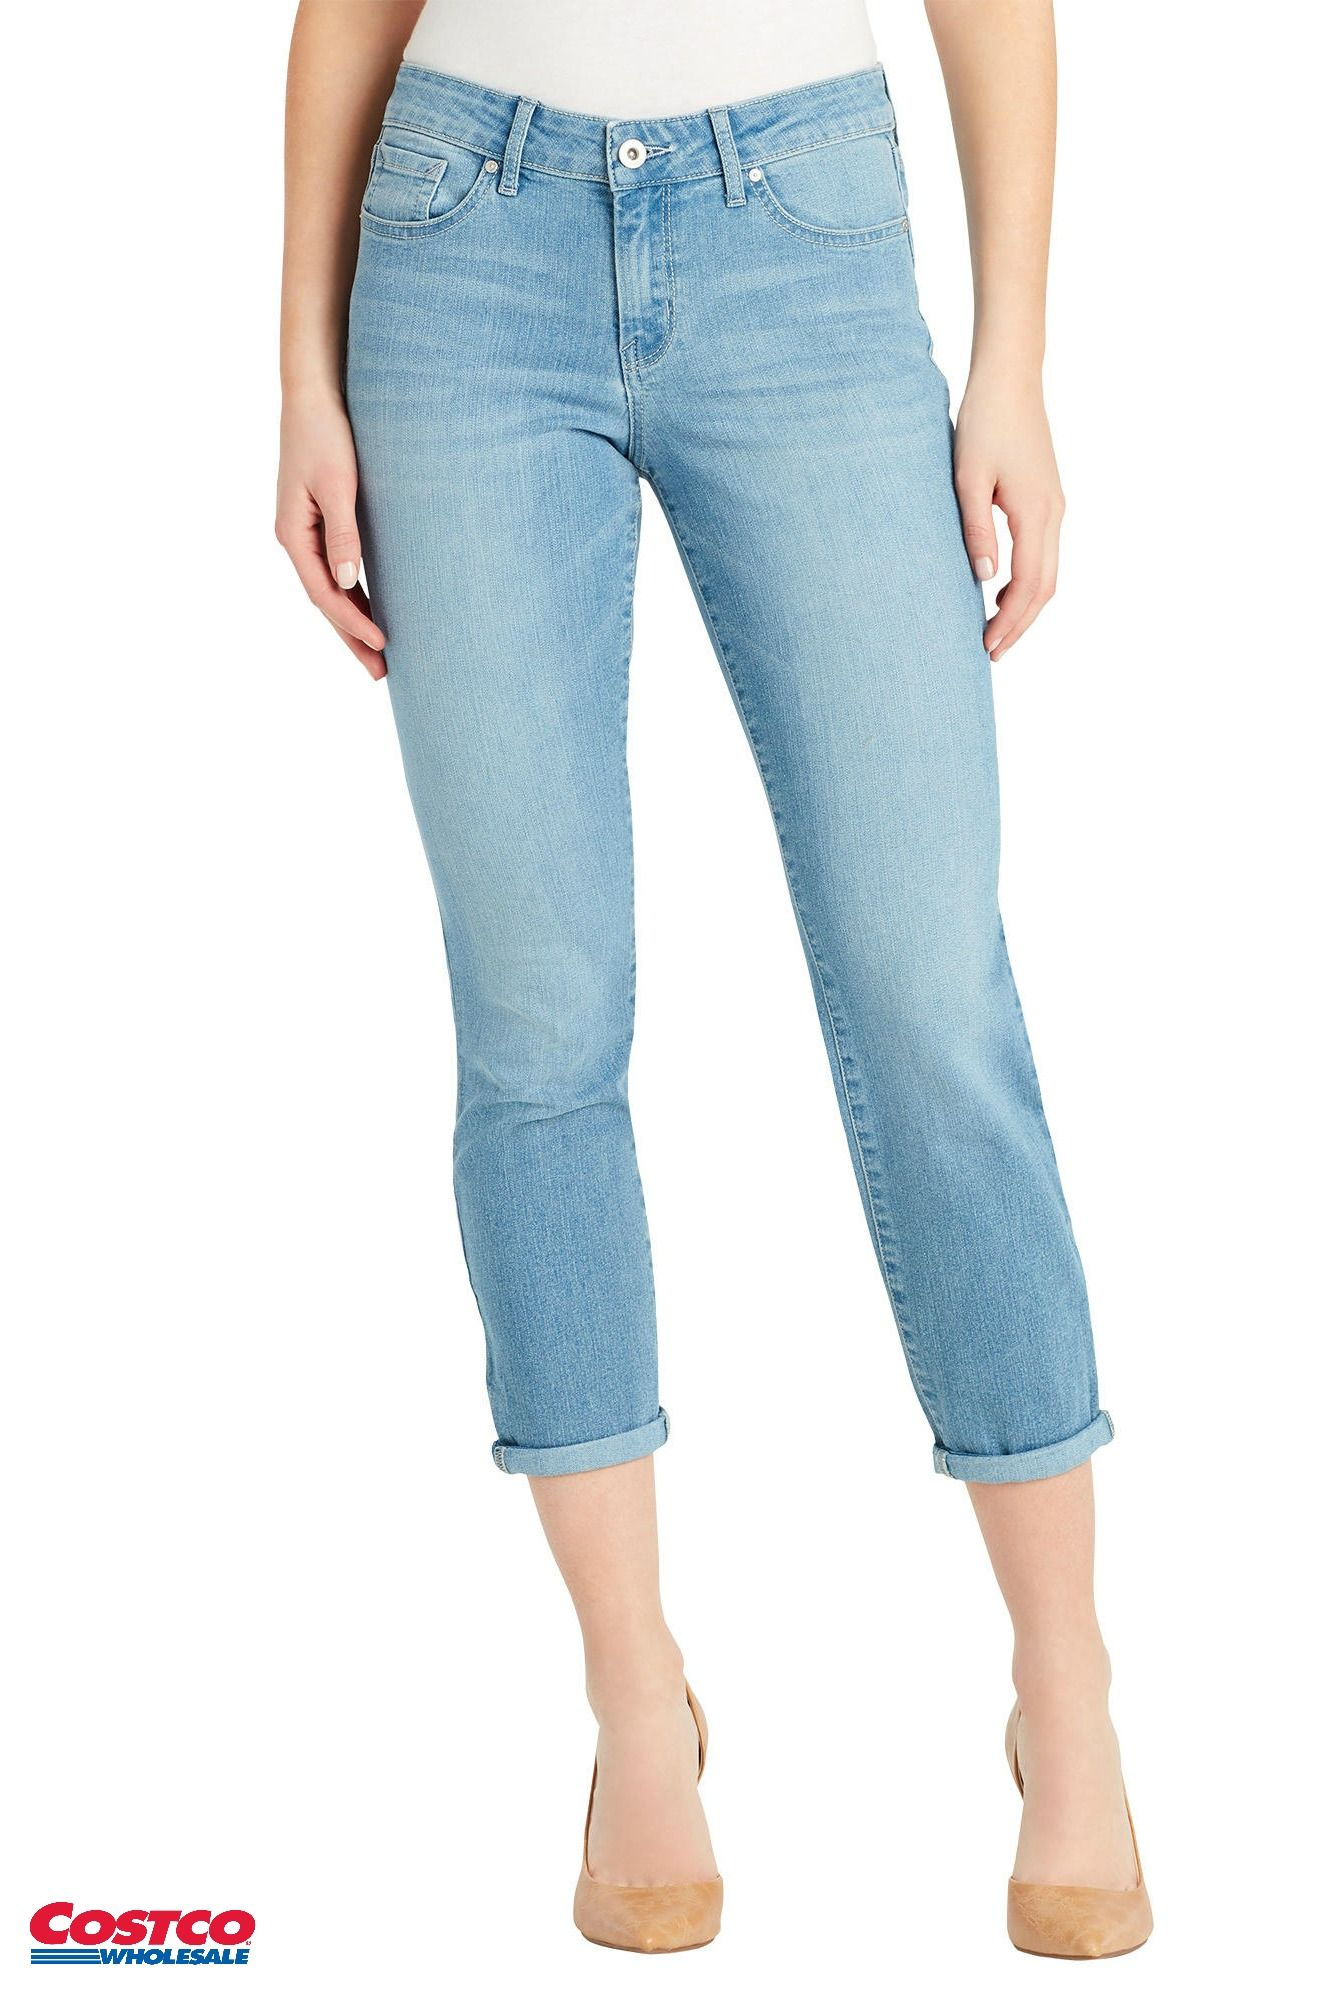 53fae7f550b Jessica Simpson Ladies Crop Jean Update your style with new jeans available at  Costco.